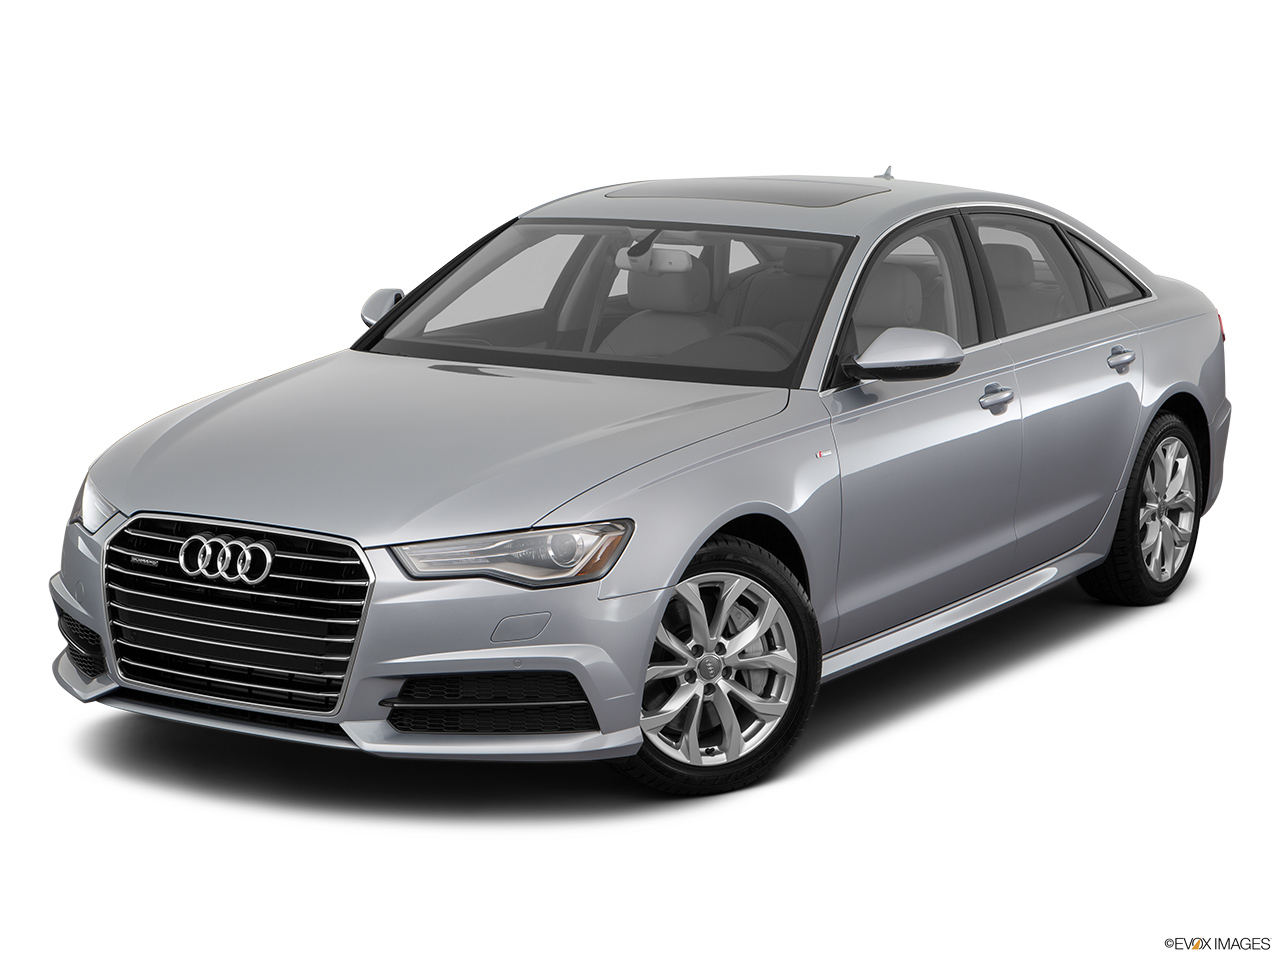 2018 audi a6 prices in uae gulf specs reviews for dubai. Black Bedroom Furniture Sets. Home Design Ideas